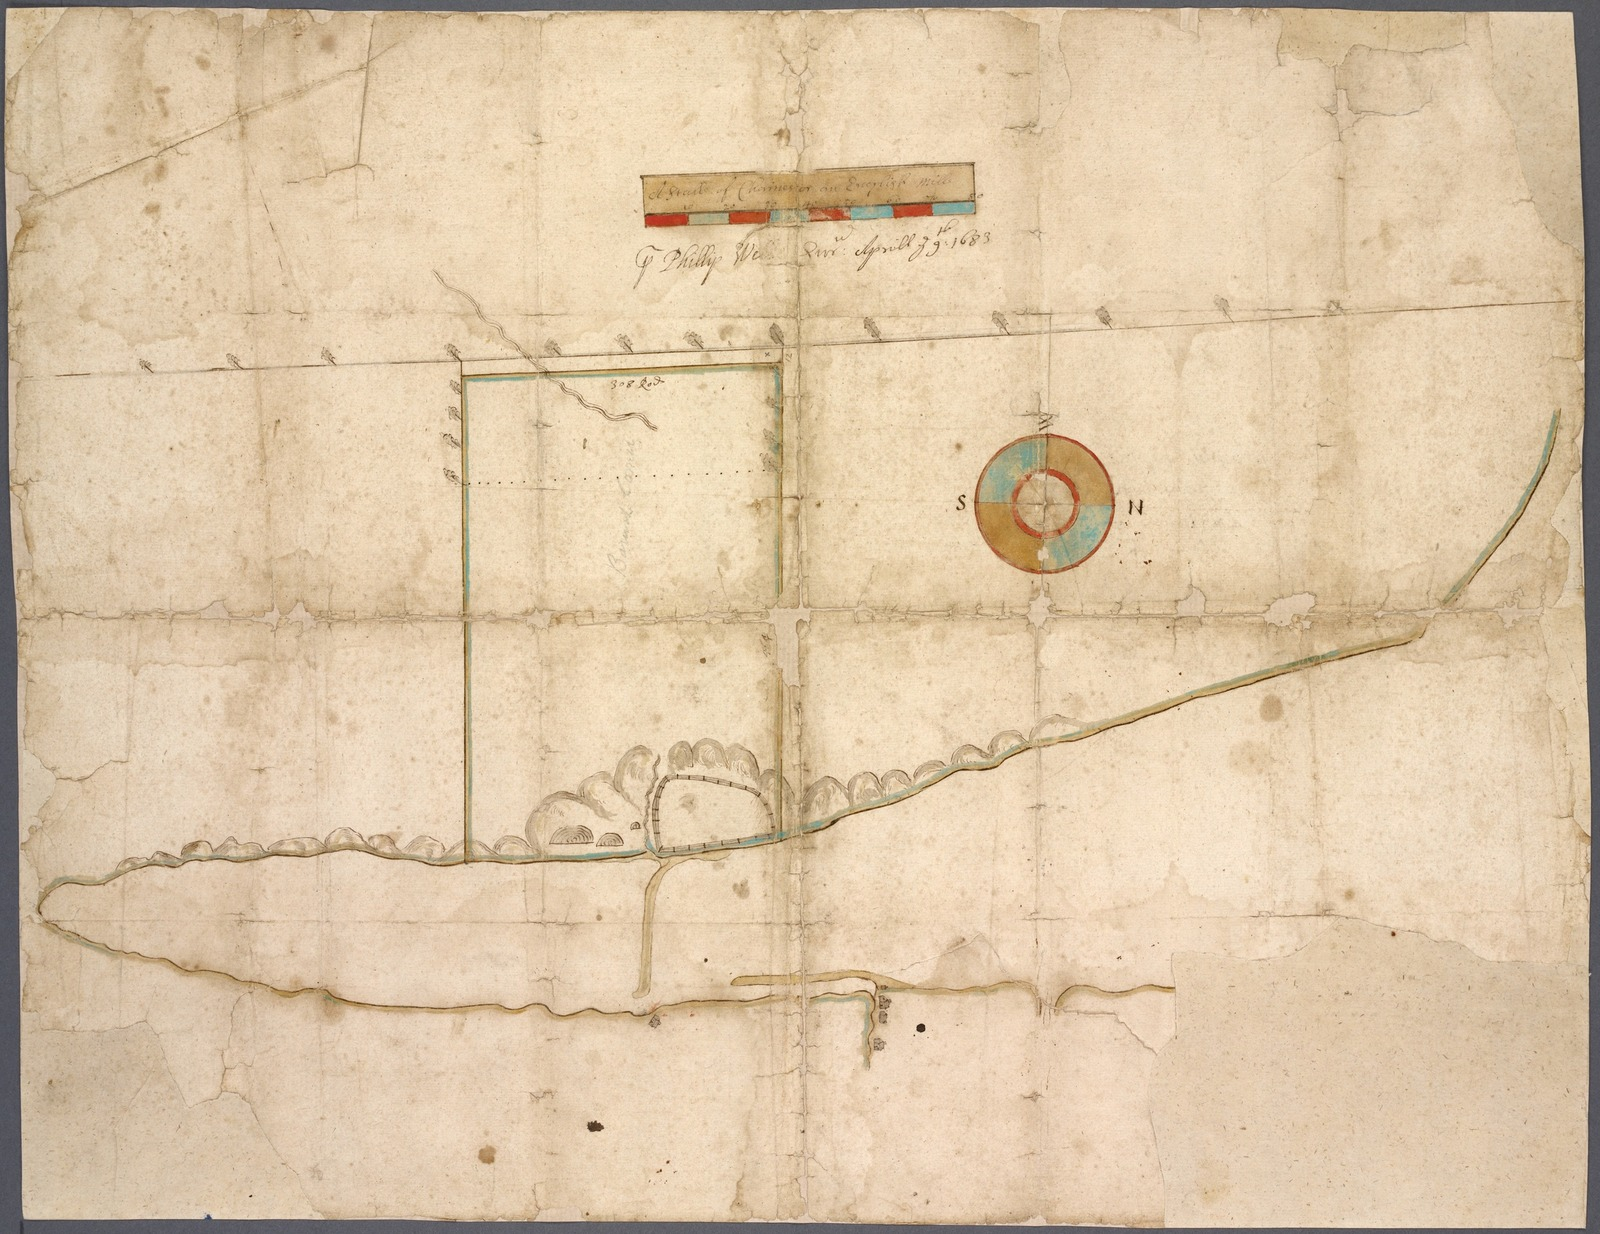 Map of West's patent on west side of Hempstead Harbor